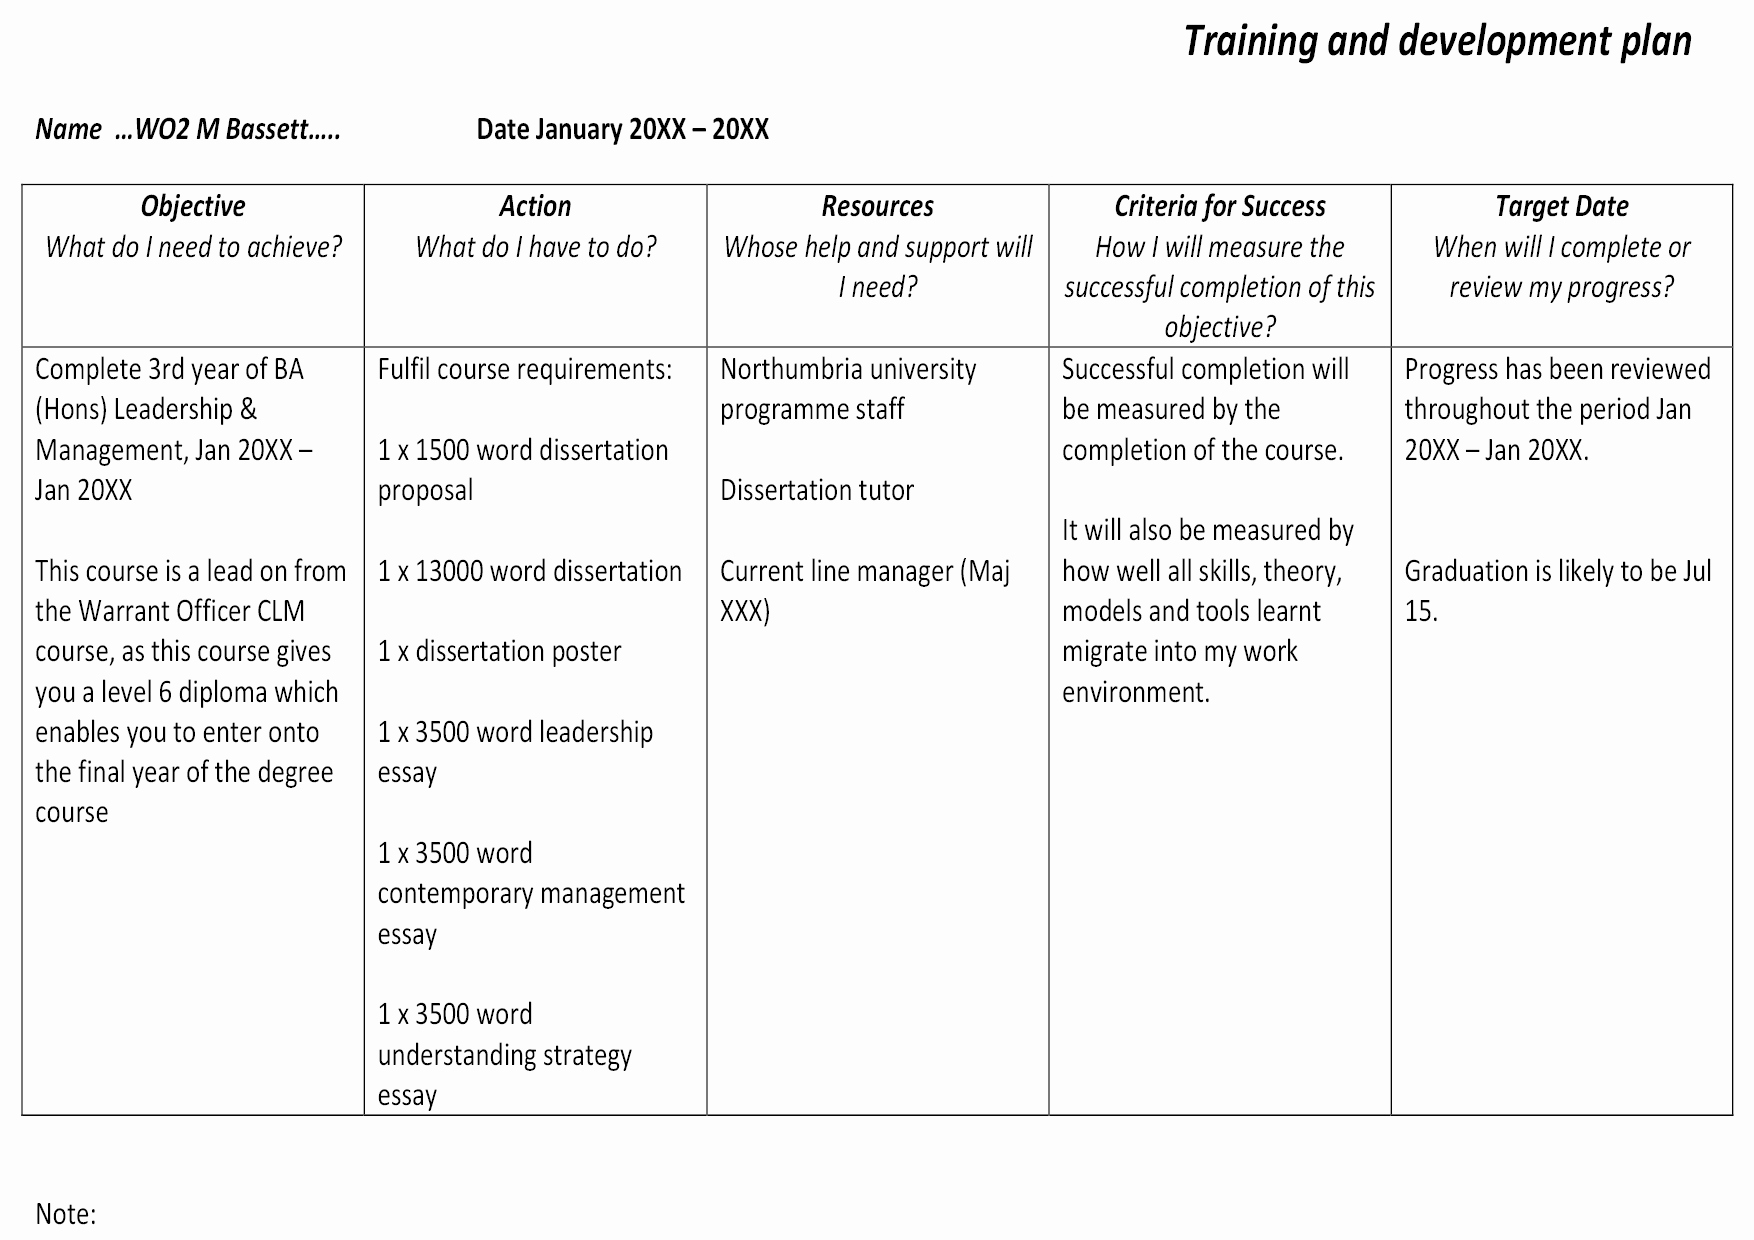 Individual Development Plan Examples Lovely is Your Own Personal Development Plan Up to Date if Not